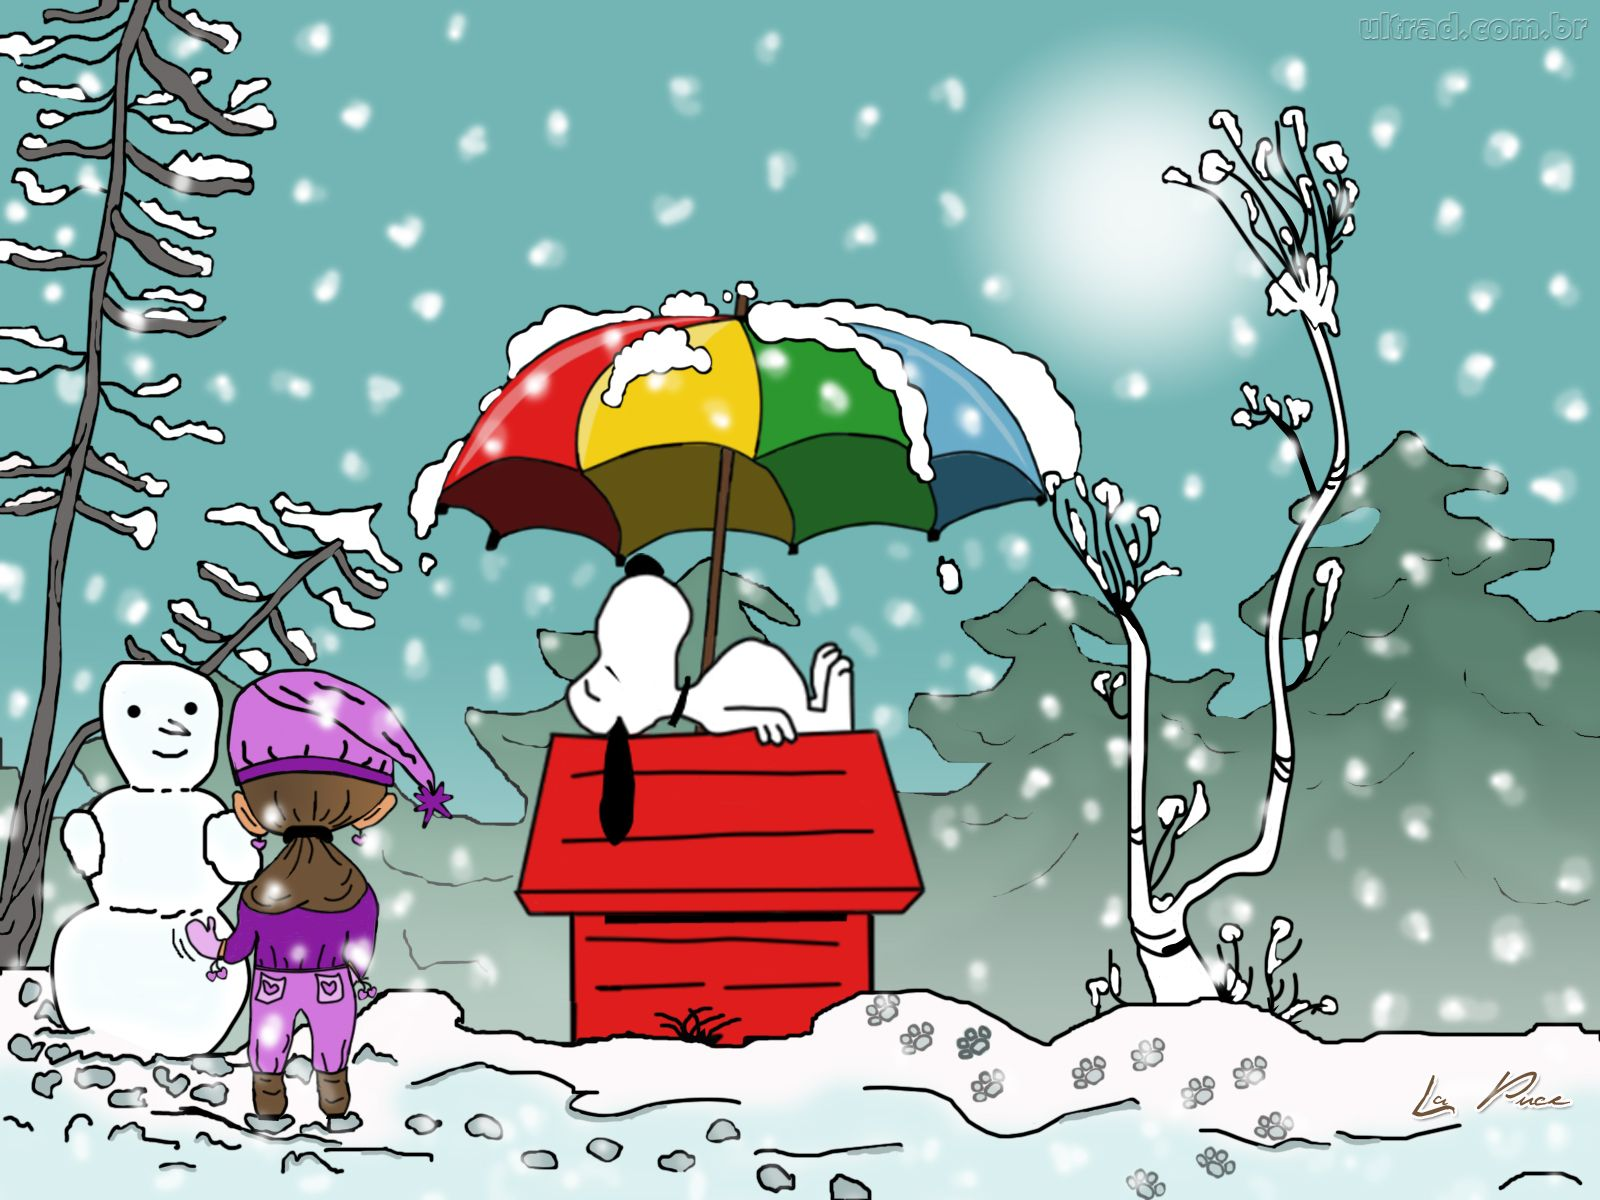 charlie brown snoopy snow holiday wallpaper 1600x1200